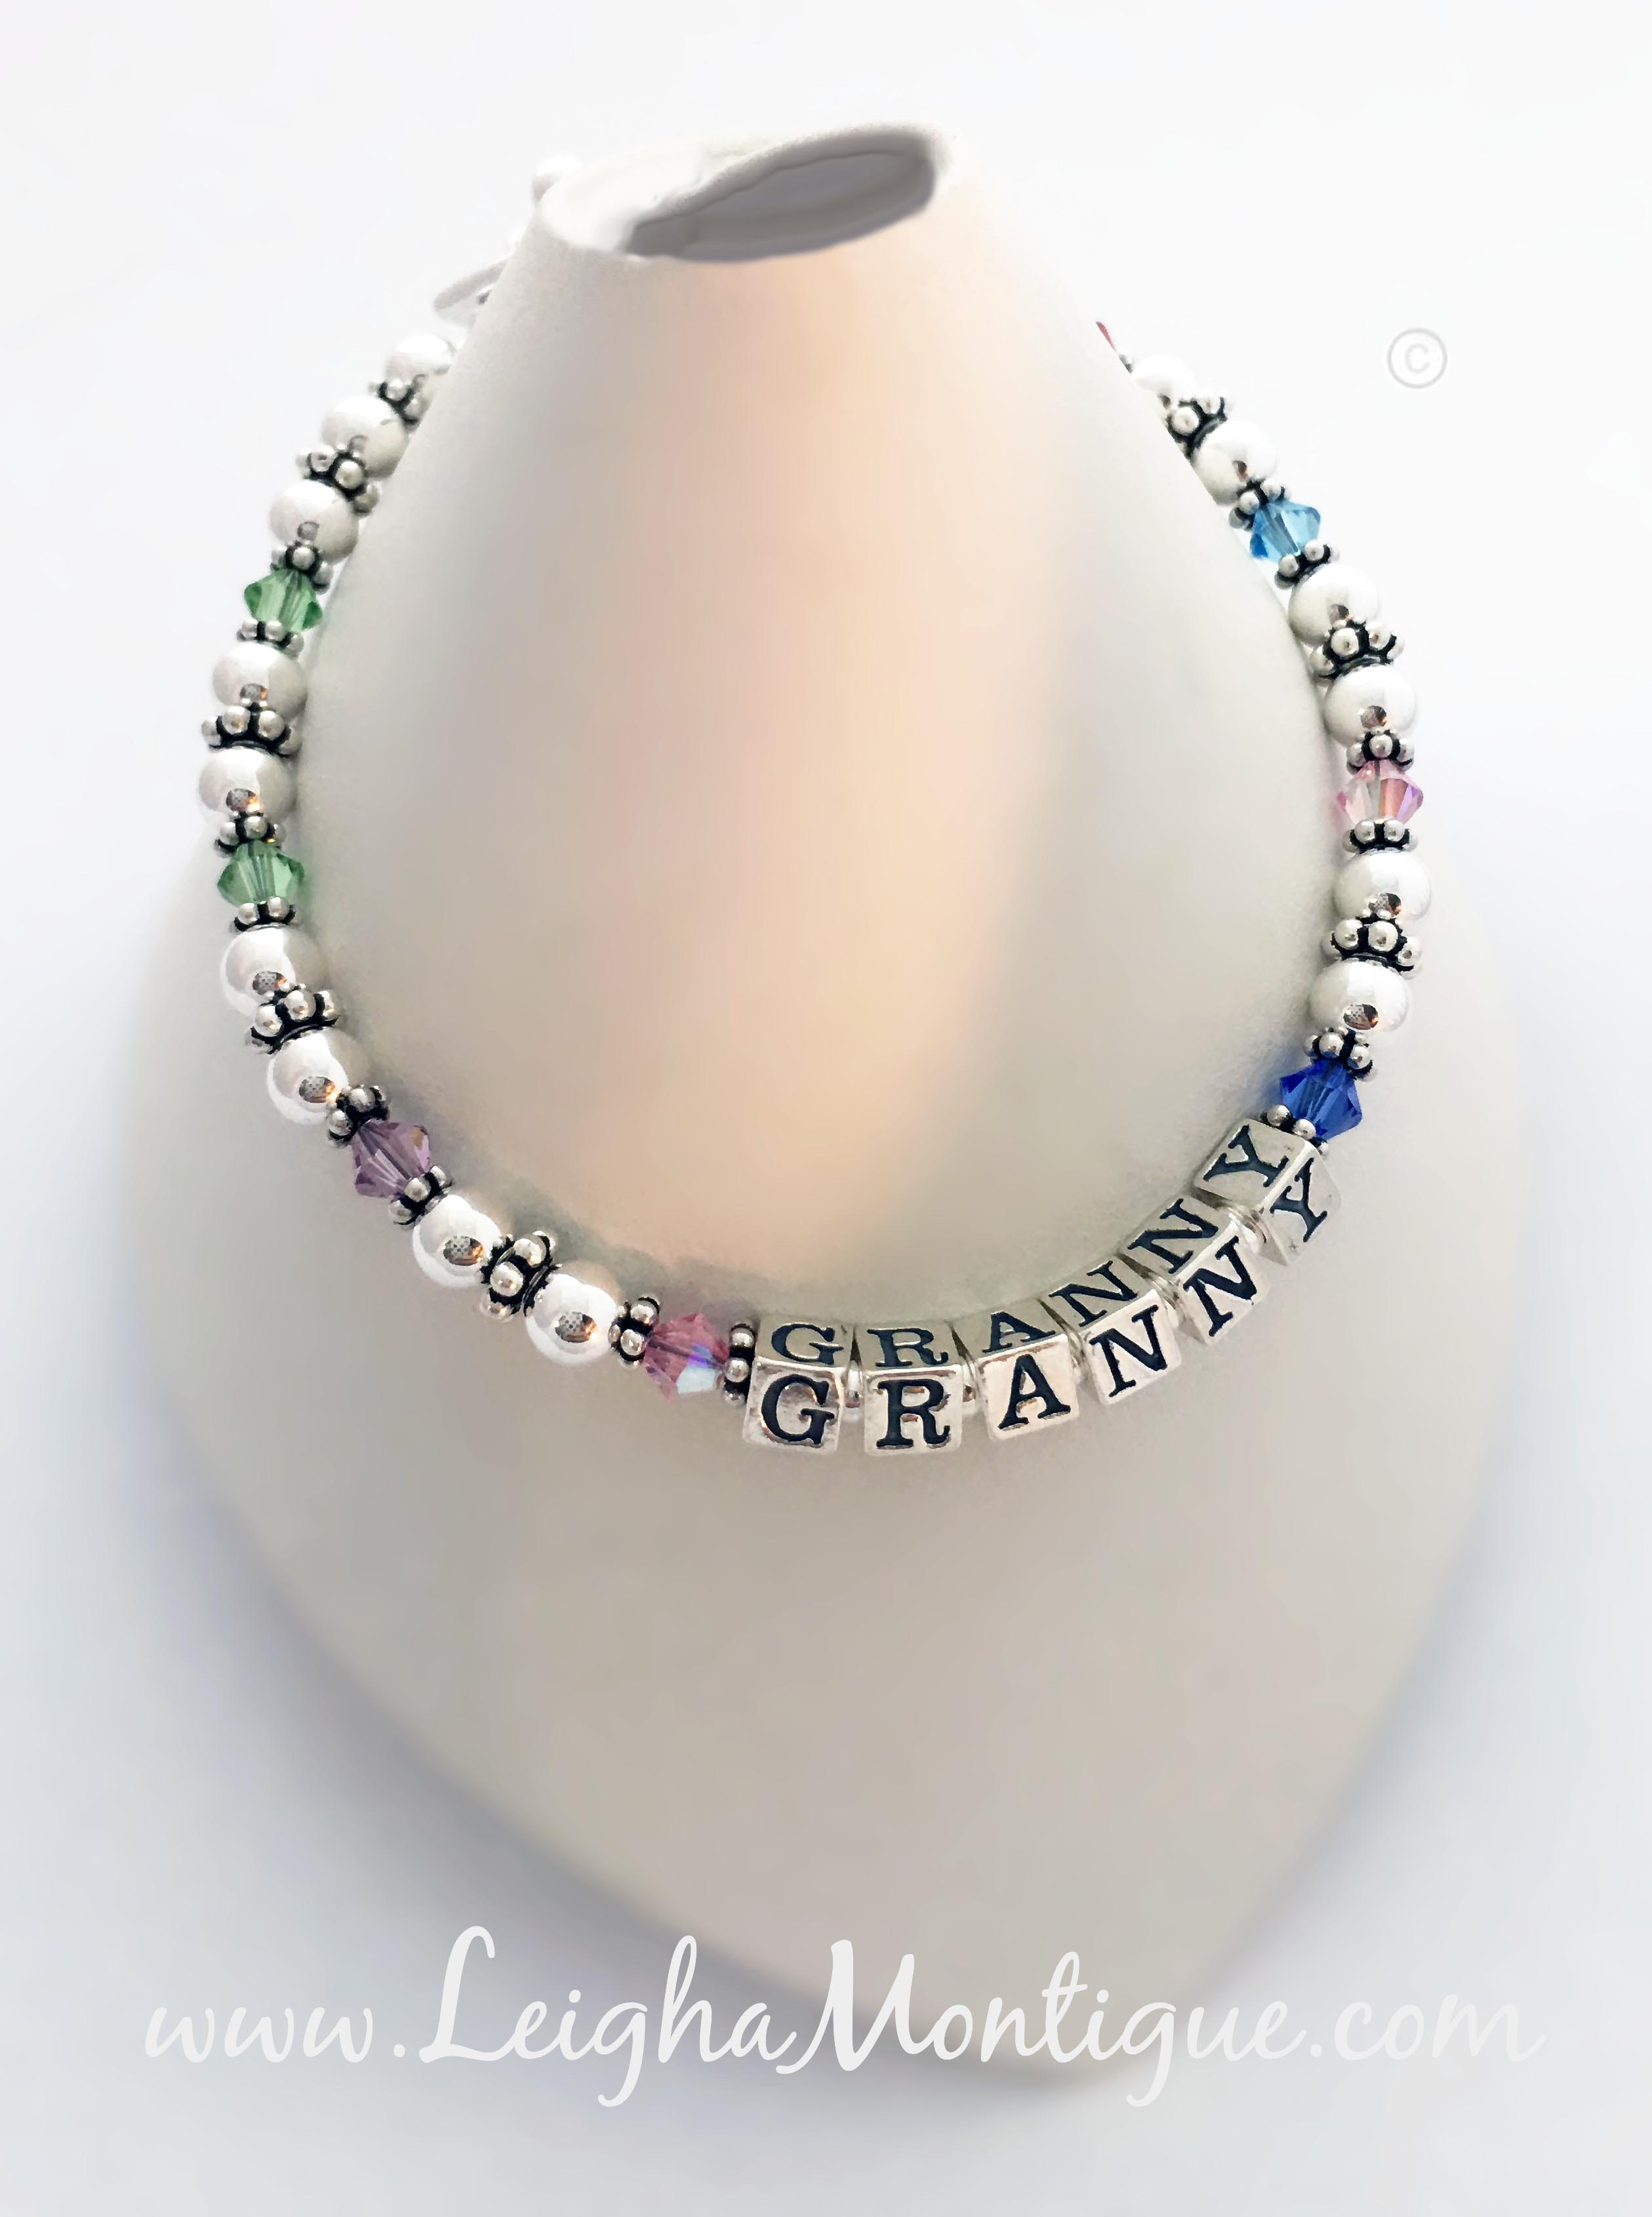 This birthstone bracelet says GRANNY with her 8 grandkids birthstone crystals by Swarovski. Enter: Aug Aug Jun Oct GRANNY Sep Oct Dec Nov